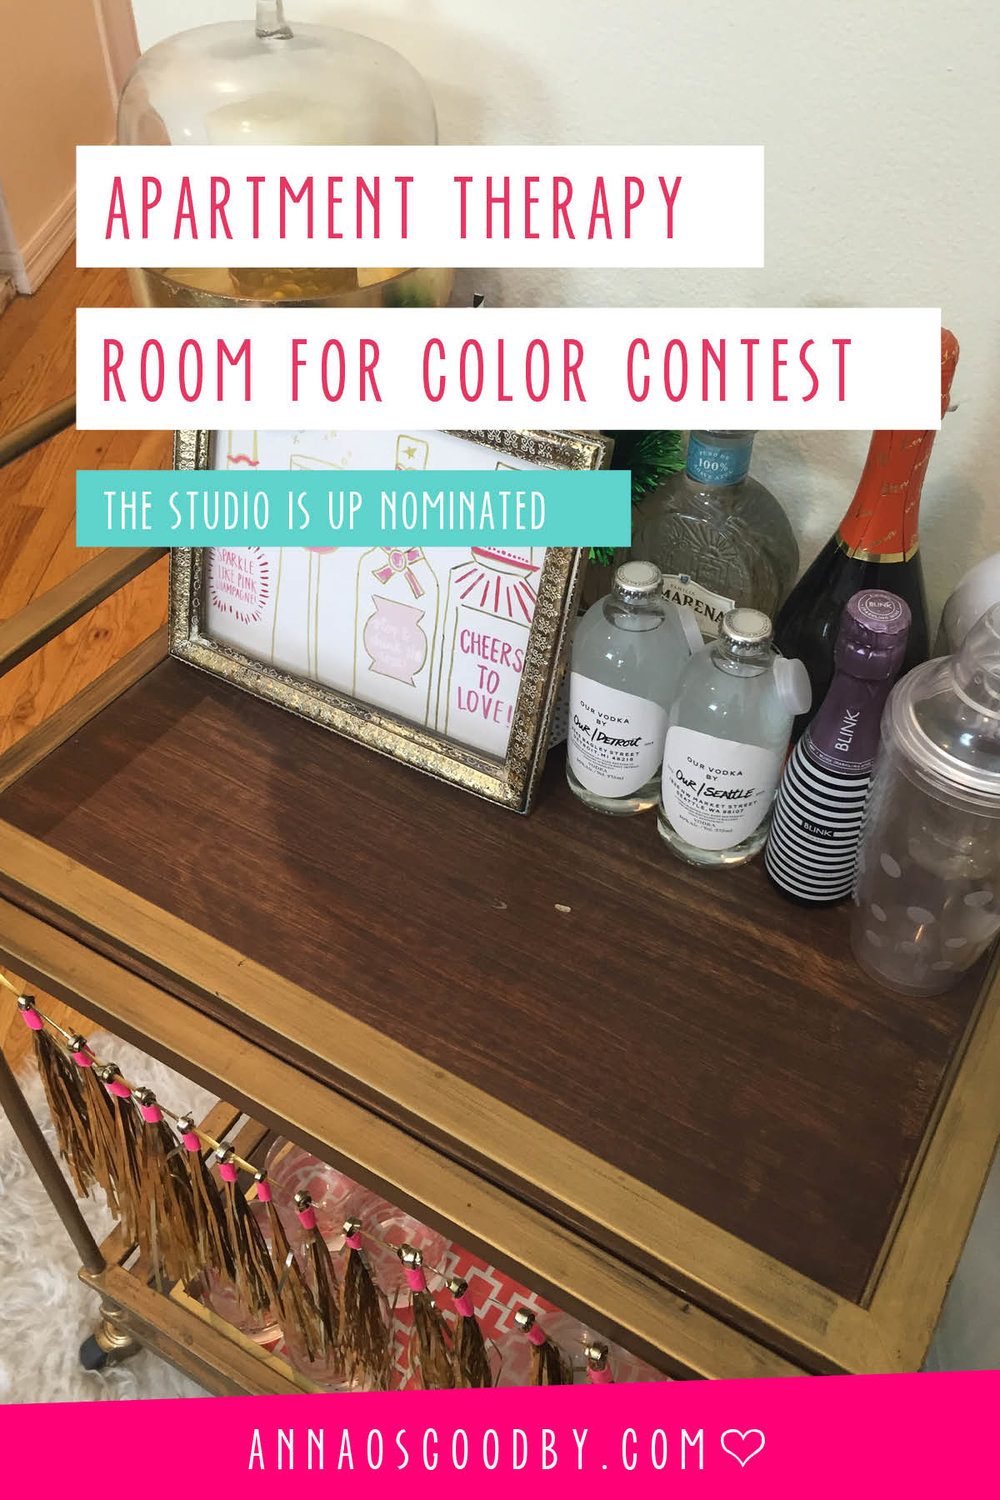 Anna Osgoodby Life + Design :: The Studio is Nominated for Apartment Therapy's Room for Color Contest